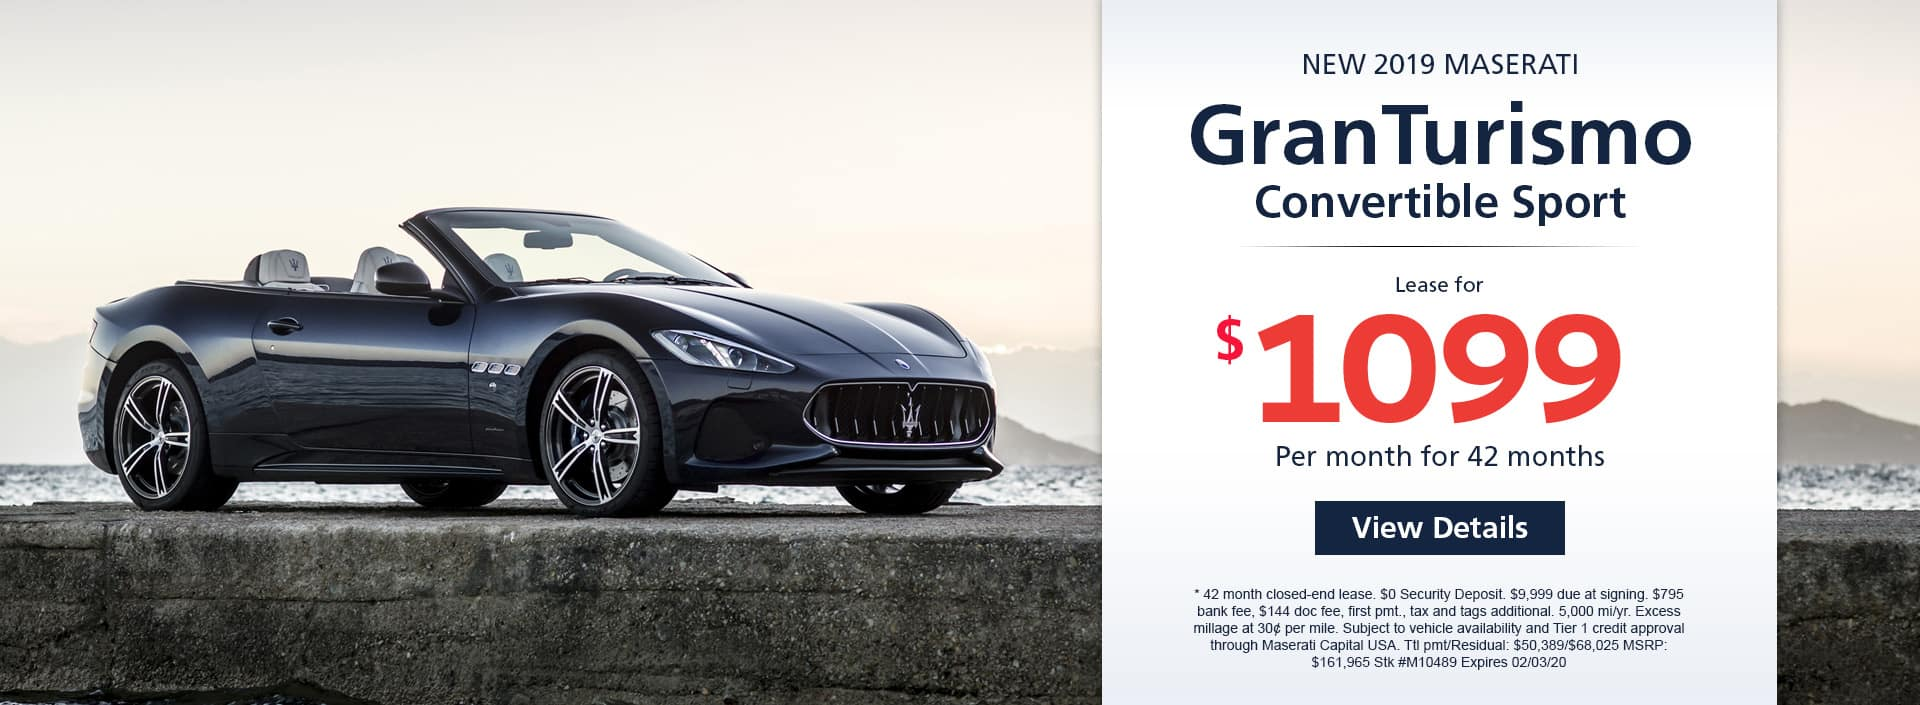 Lease a new 2019 Maserati GranTurismo Convertible Sport for $1,099 a month for 42 months. Or get special 0% APR financing for up to 60 months or 0% APR financing up to 72 months